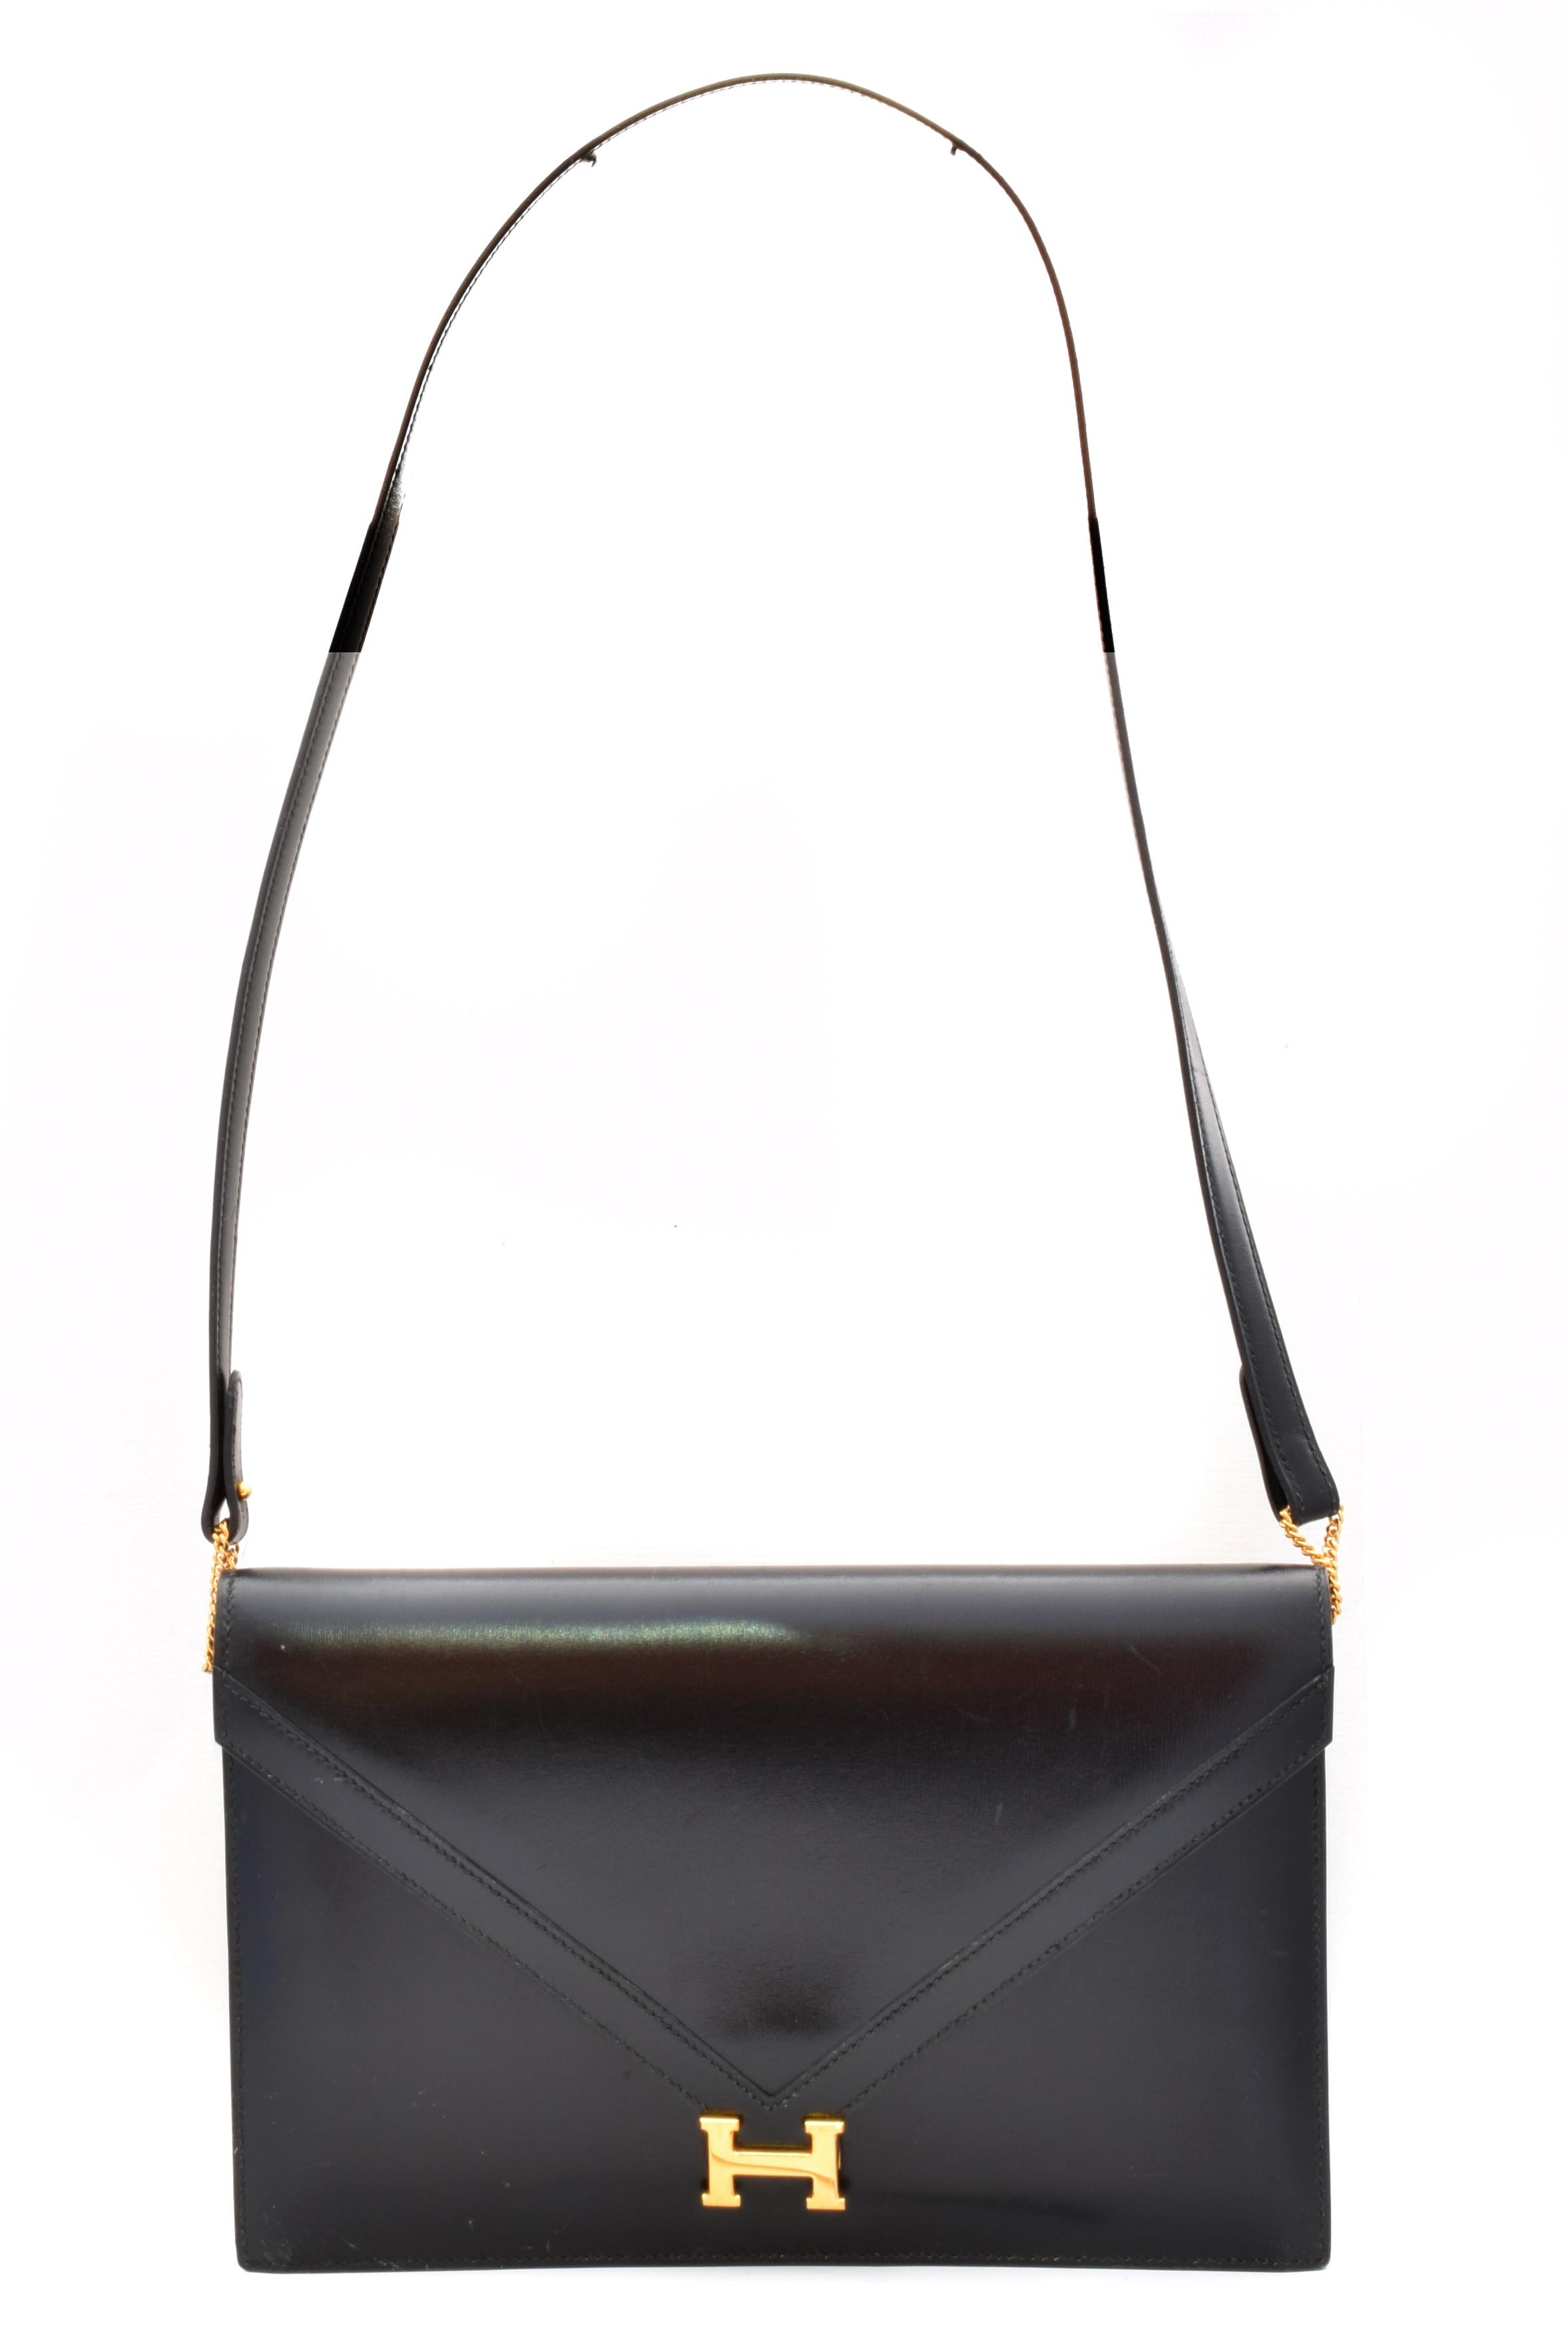 A Hermes Lydie Shoulder Bag, circa 1985,